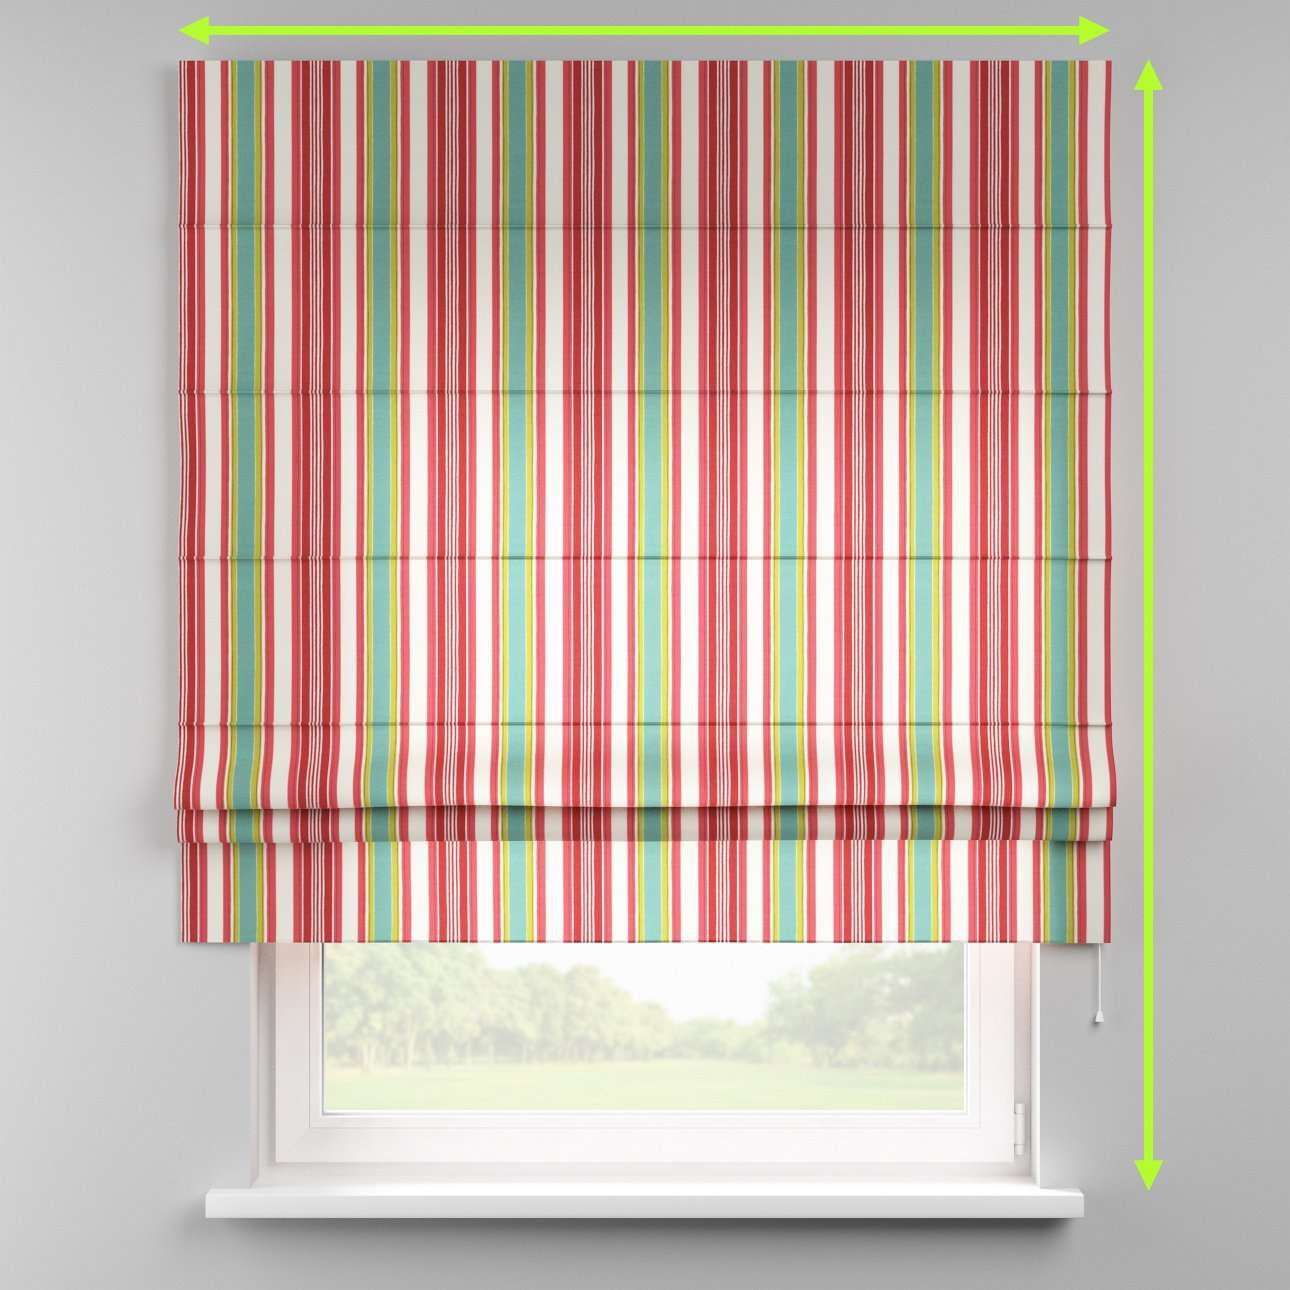 Padva roman blind  in collection Londres, fabric: 122-01